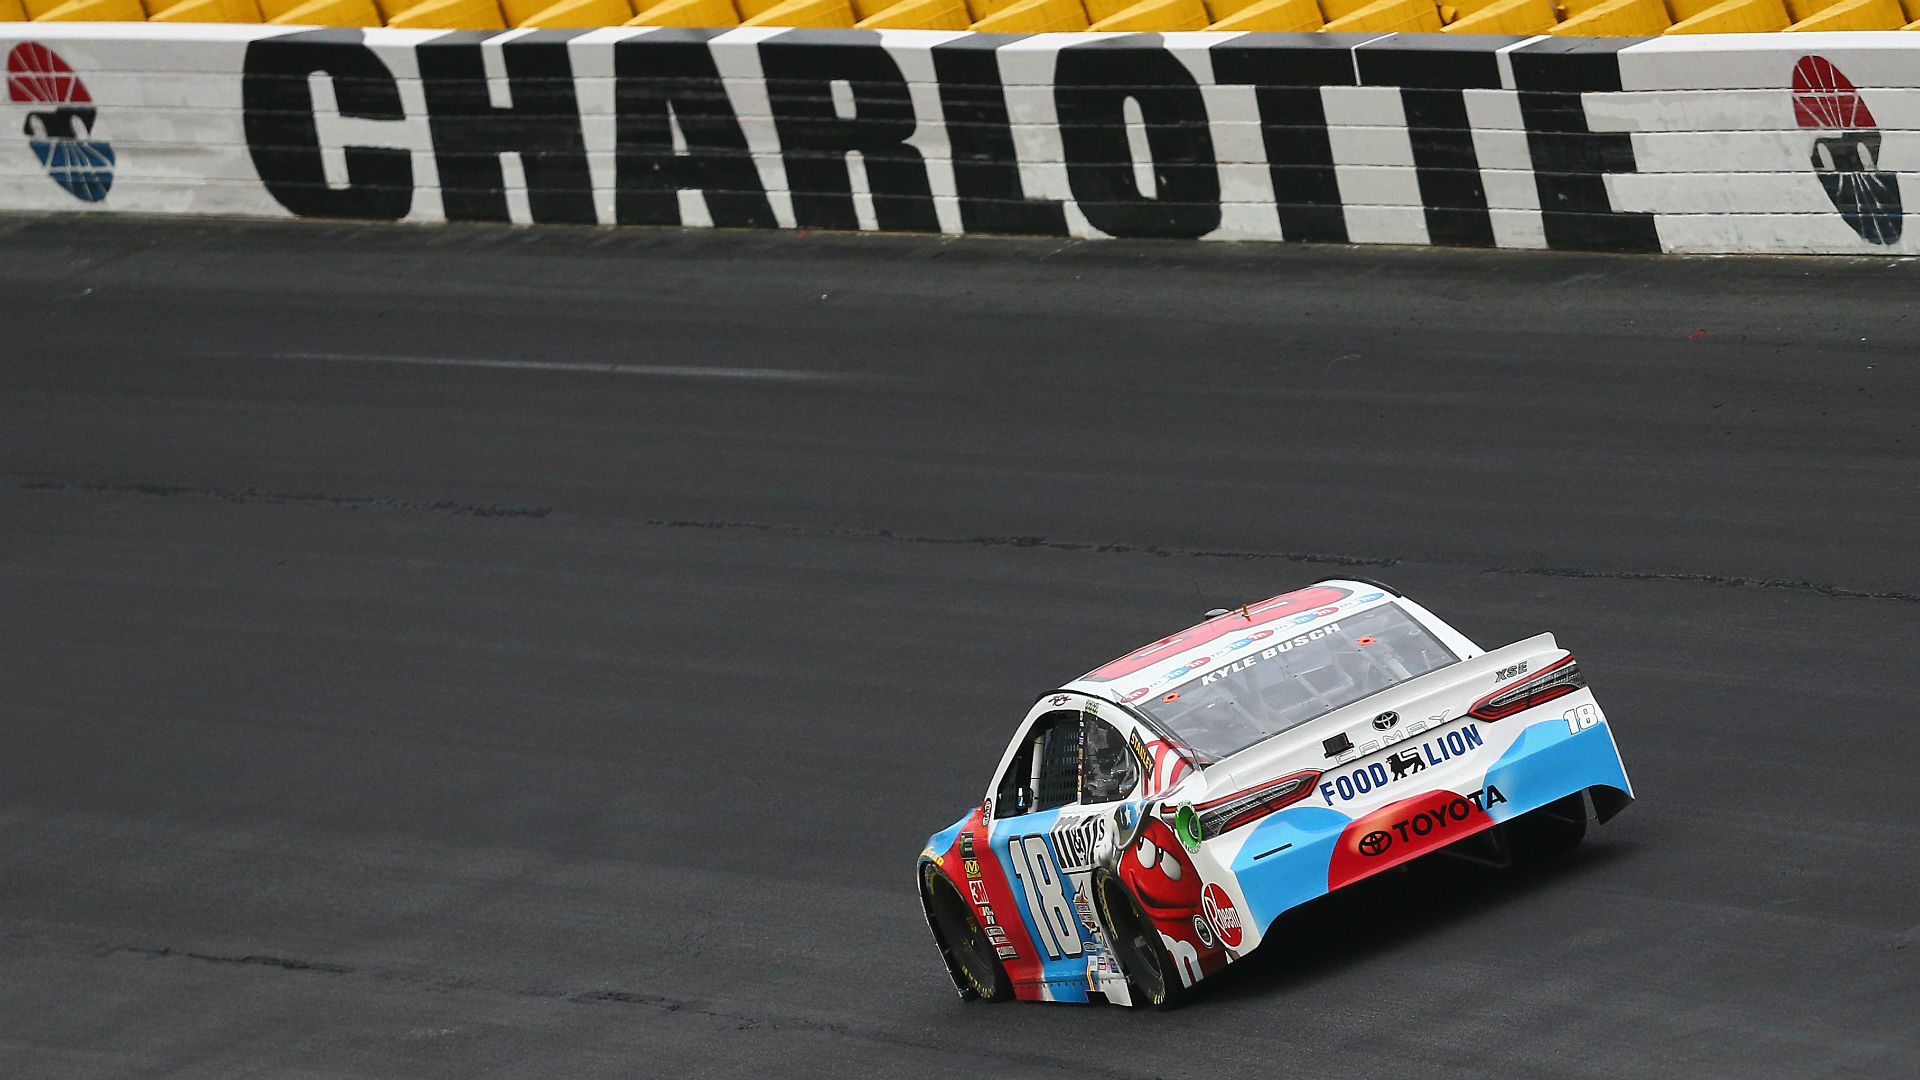 NASCAR results at Charlotte: Kyle Busch dominates to win Coca-Cola 600